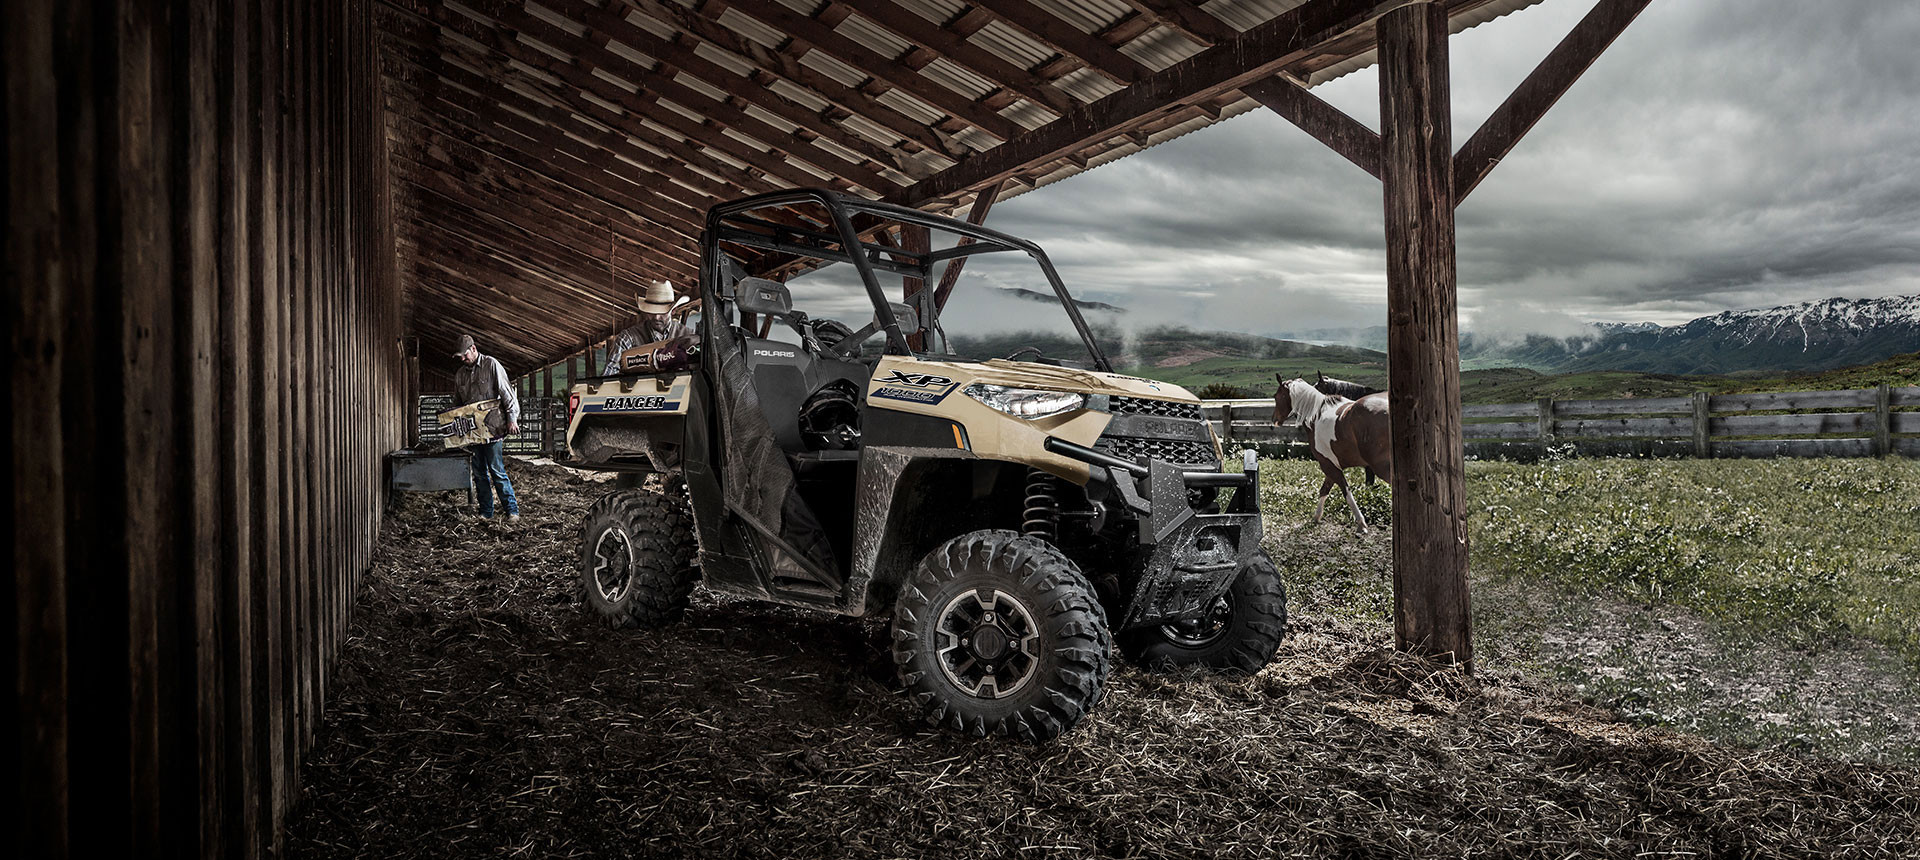 2020 RANGER® XP 1000 Texas Edition Instagram image 4